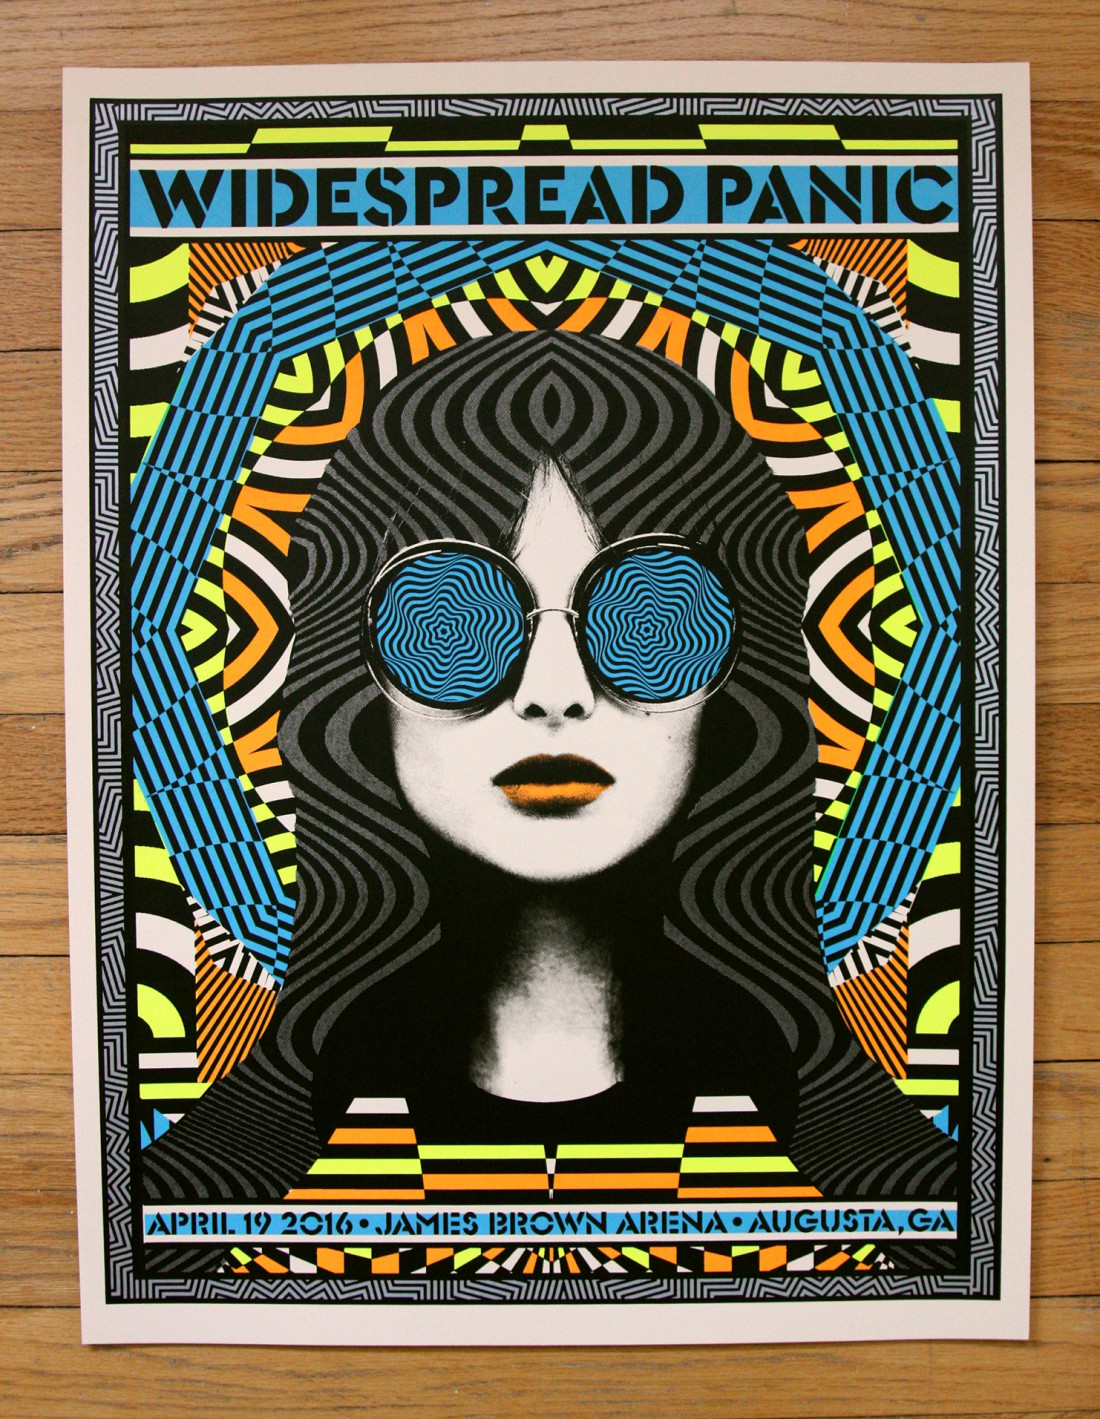 duval widespread panic august ga 2016